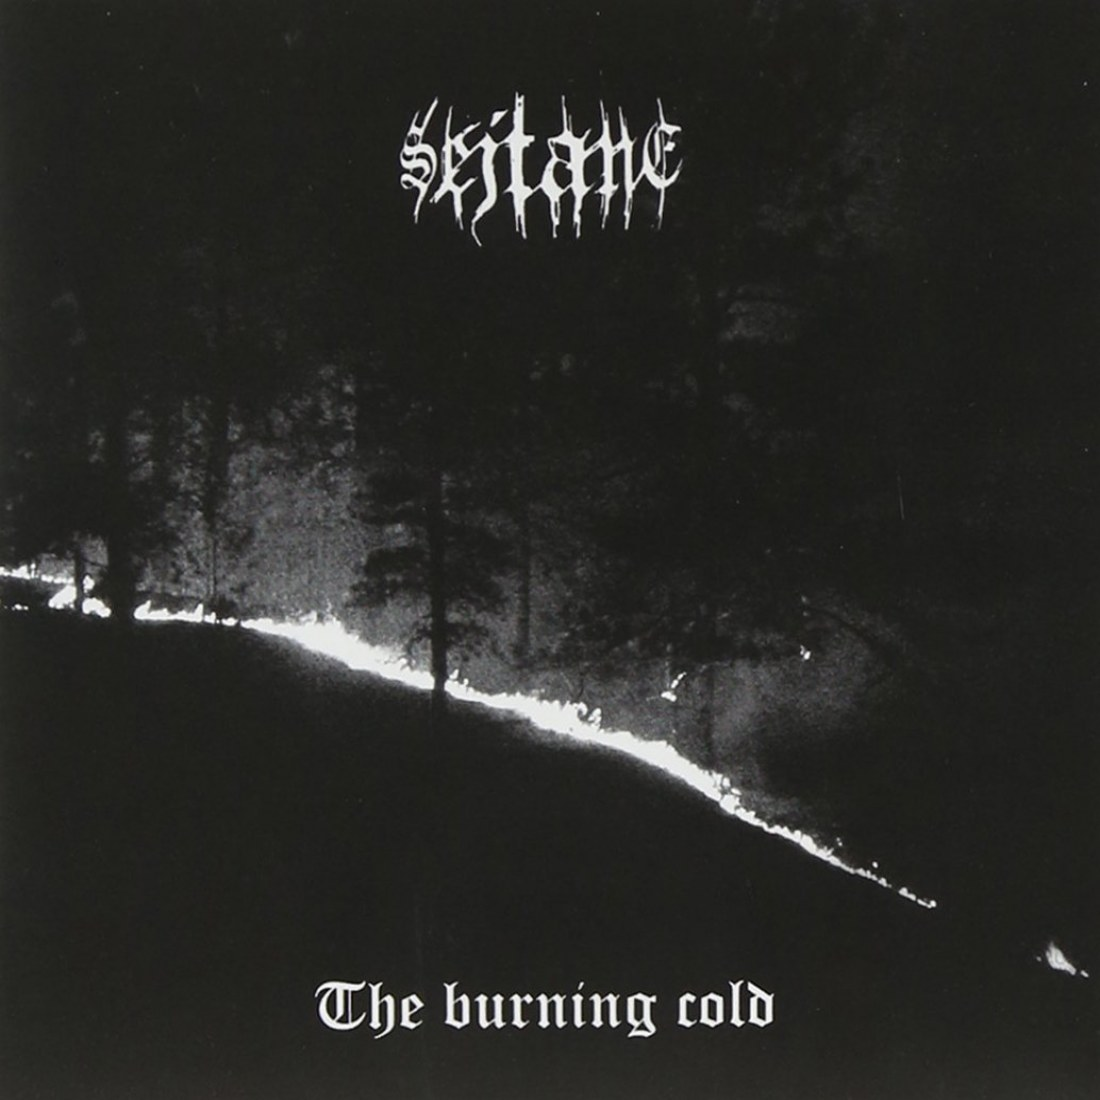 Review for Sejtane - The Burning Cold